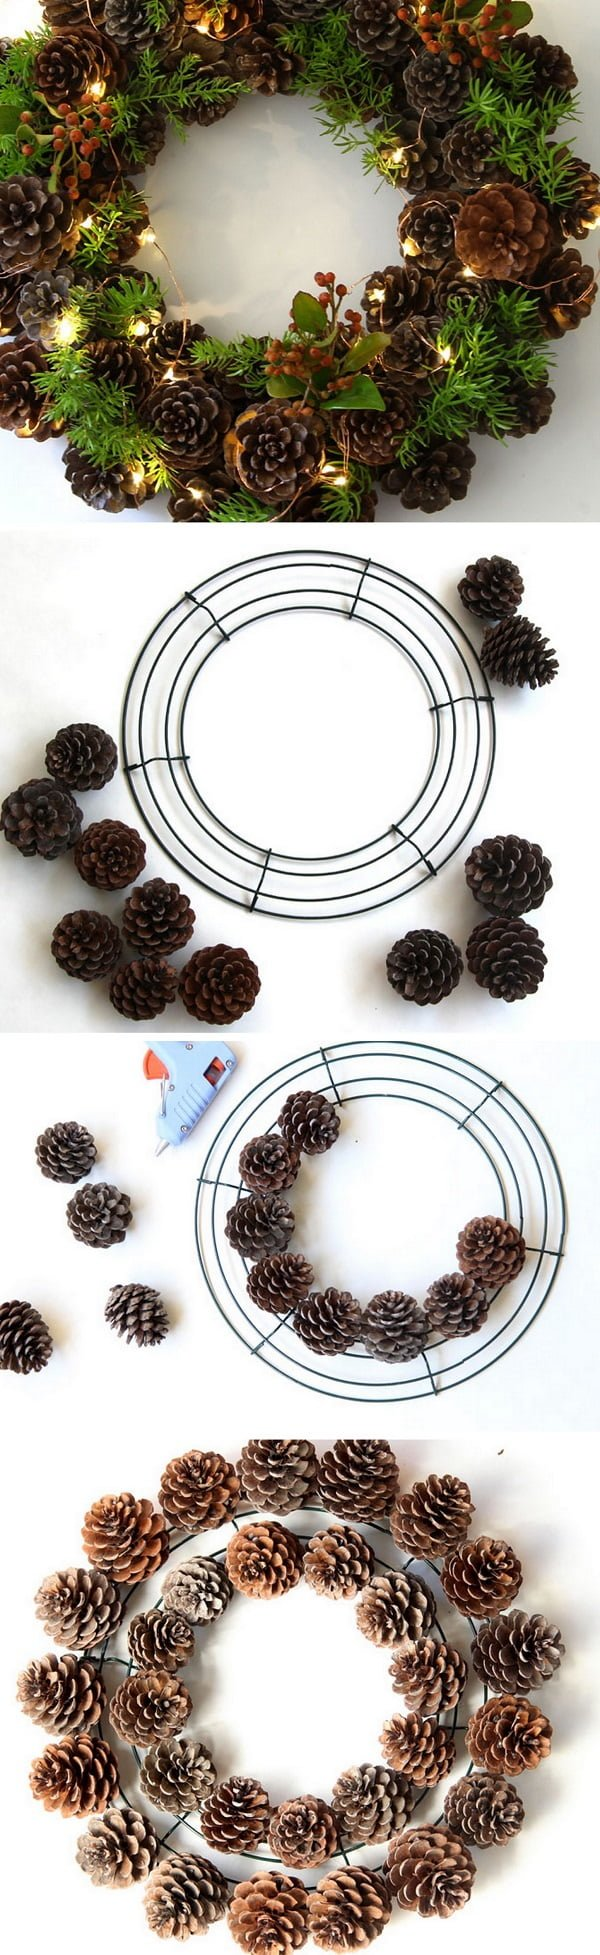 Check out the tutorial on how to make a DIY pinecone fall wreath